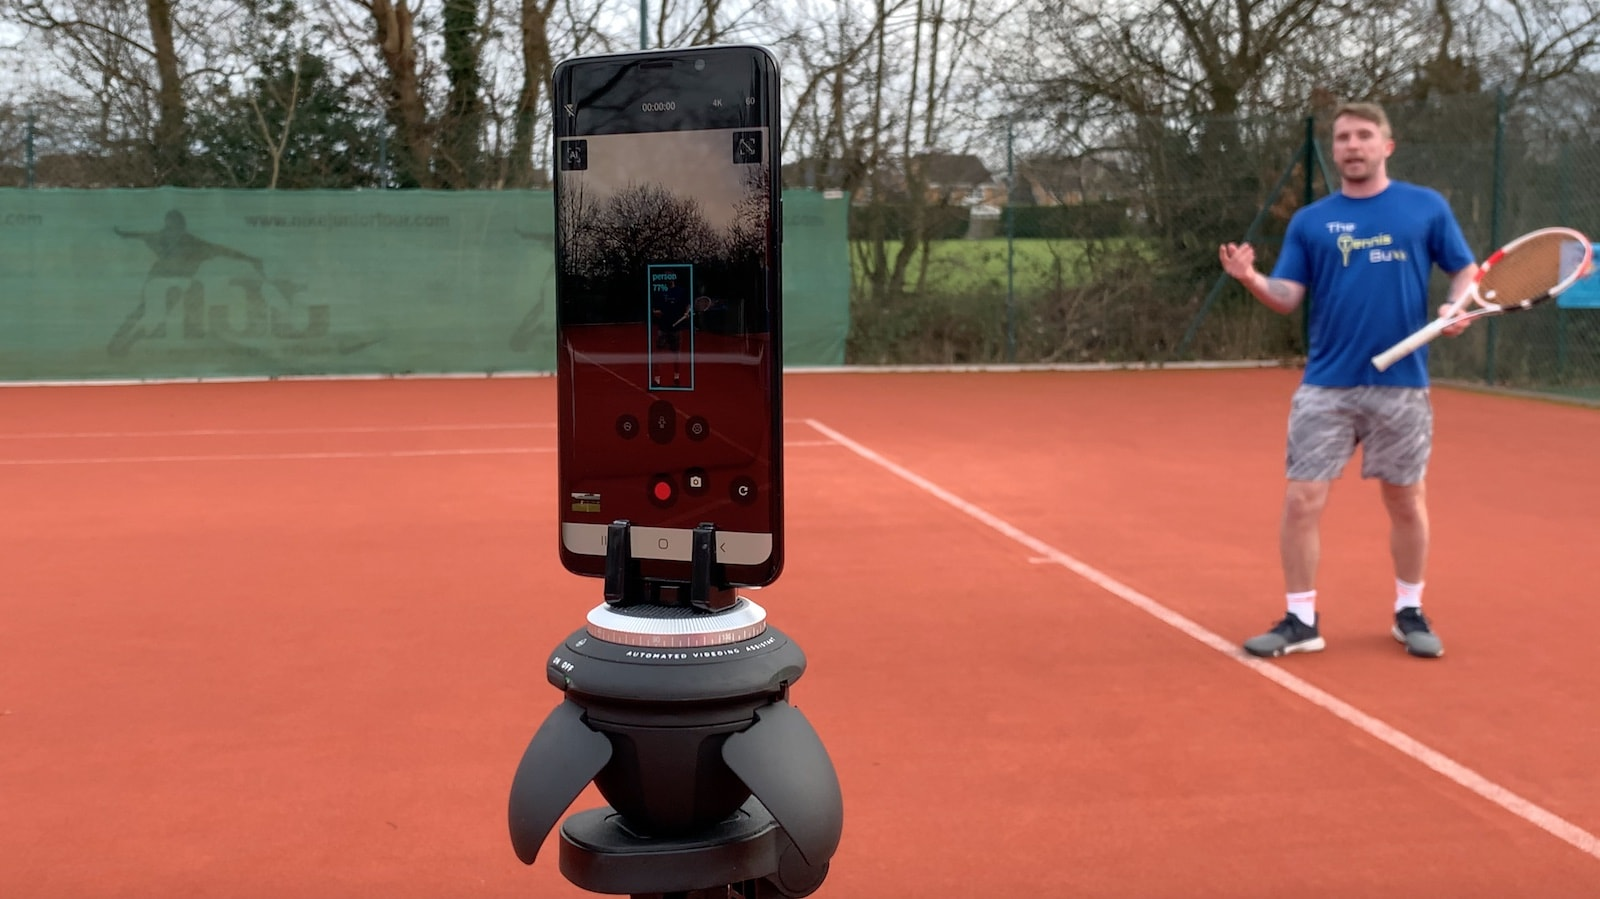 AVA automated videoing assistant is a tracking robot that films people on the move